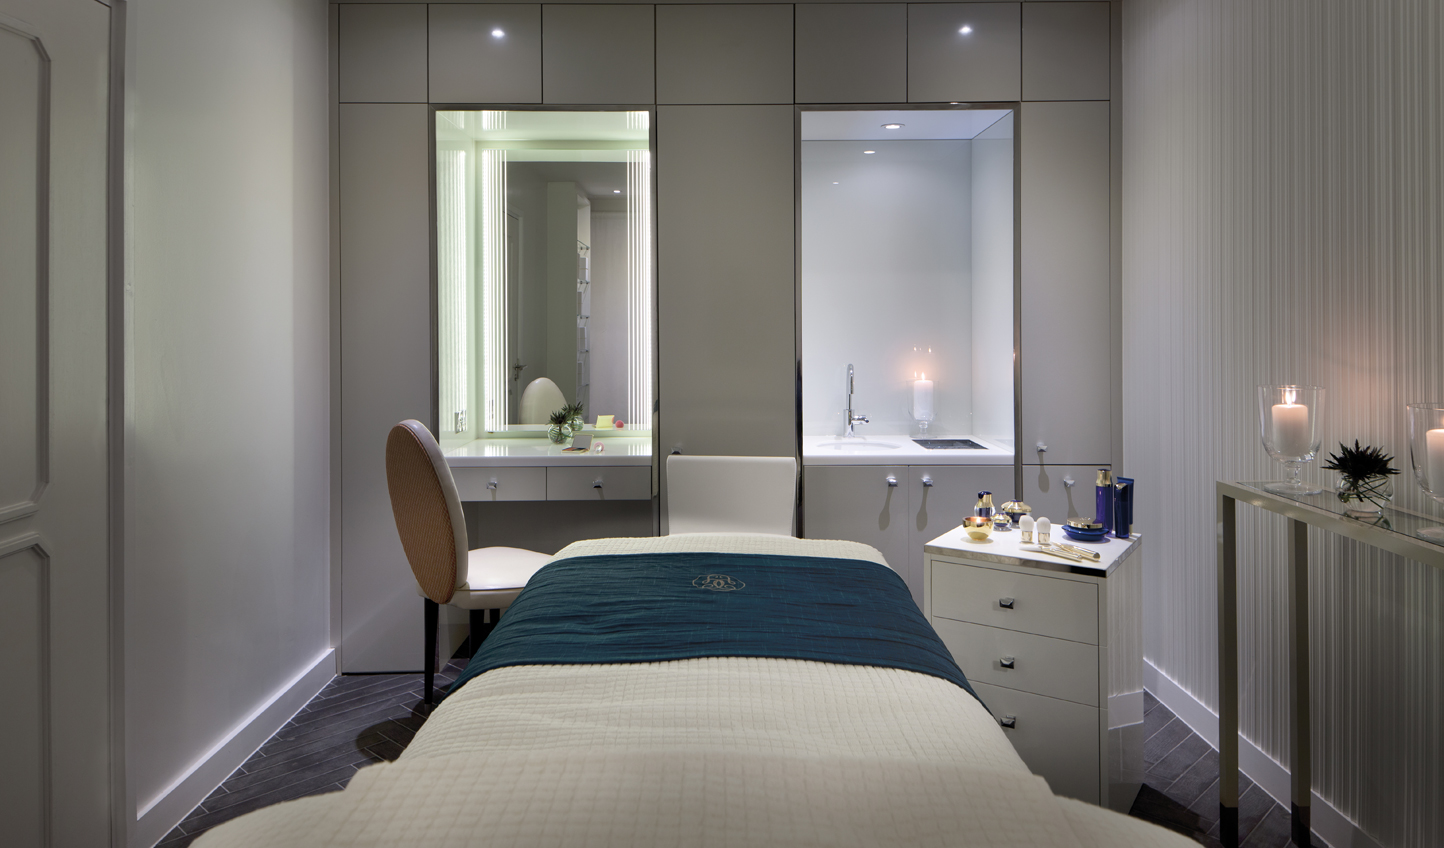 Soothe weary muscles in the Guerlain Spa